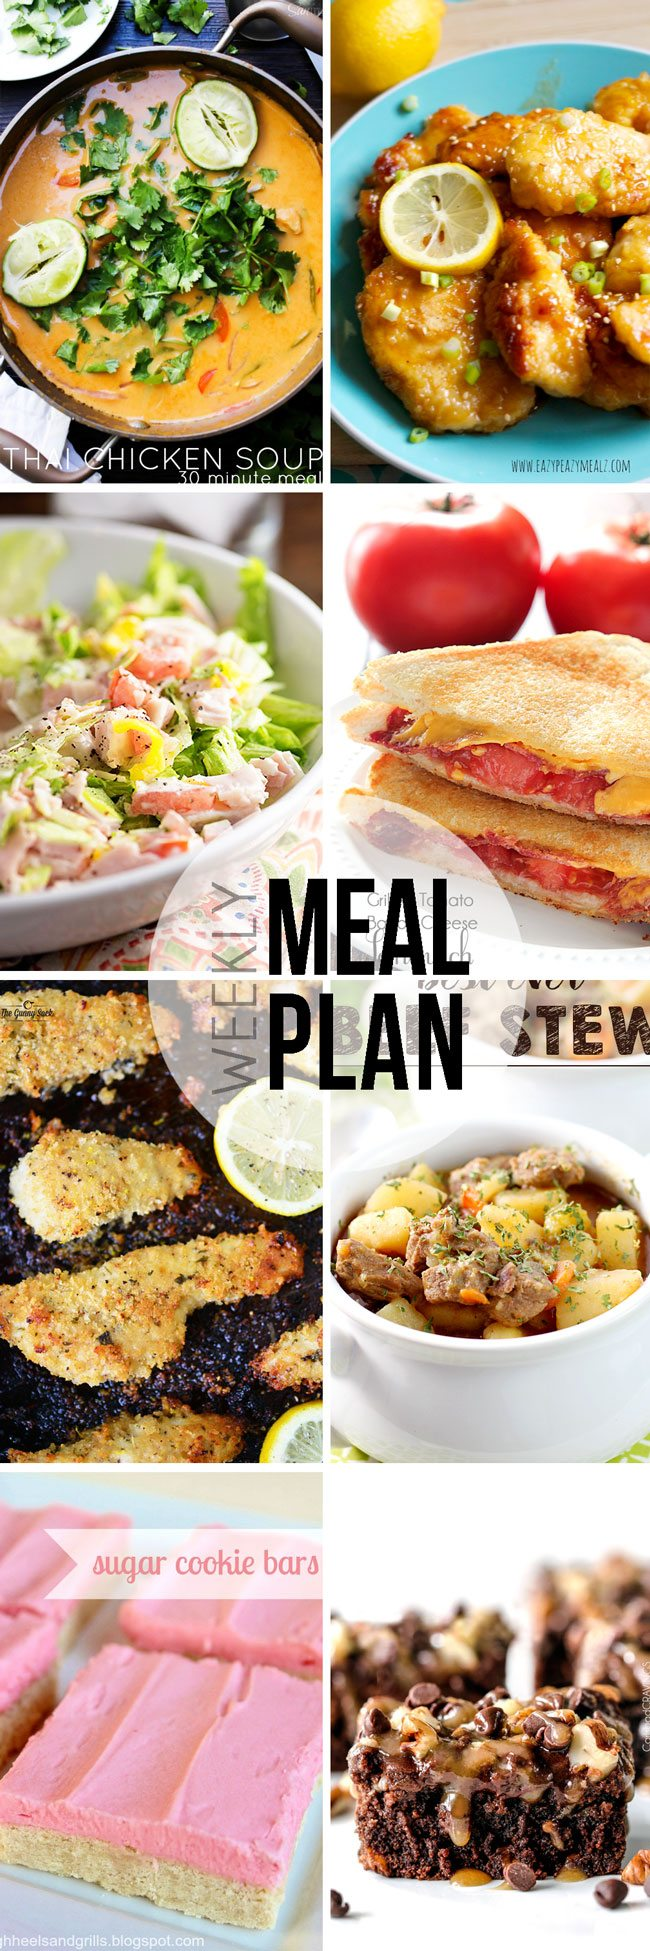 Meal-Plan---Pinterest-30